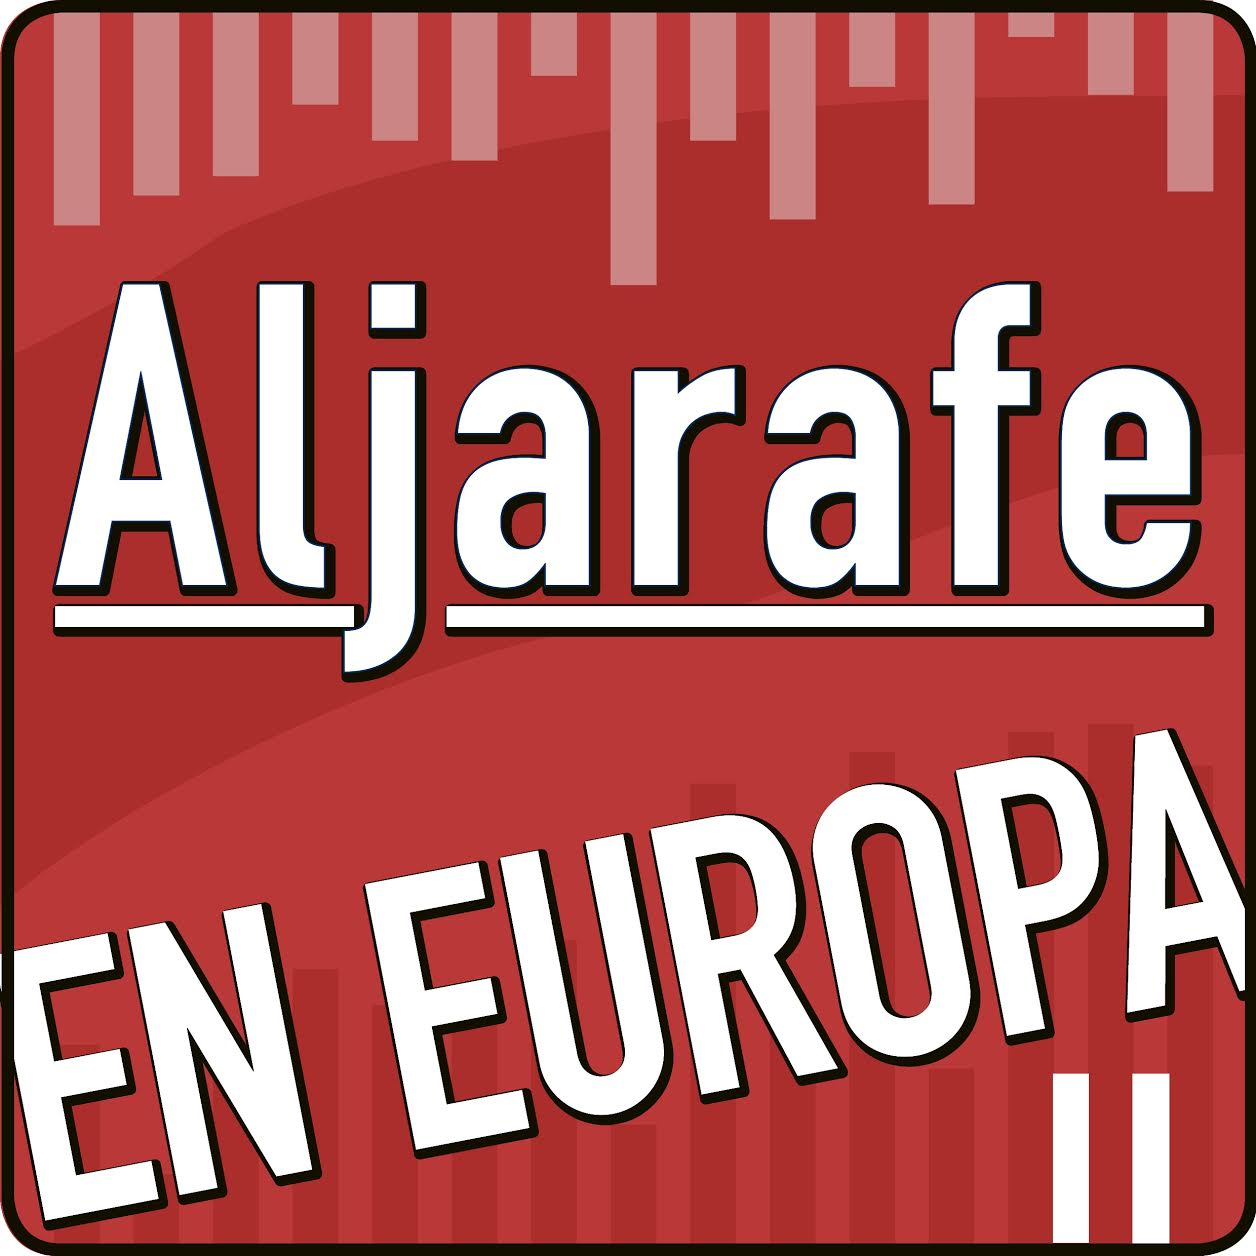 Attachment ALJARAFE_LOGO.jpg